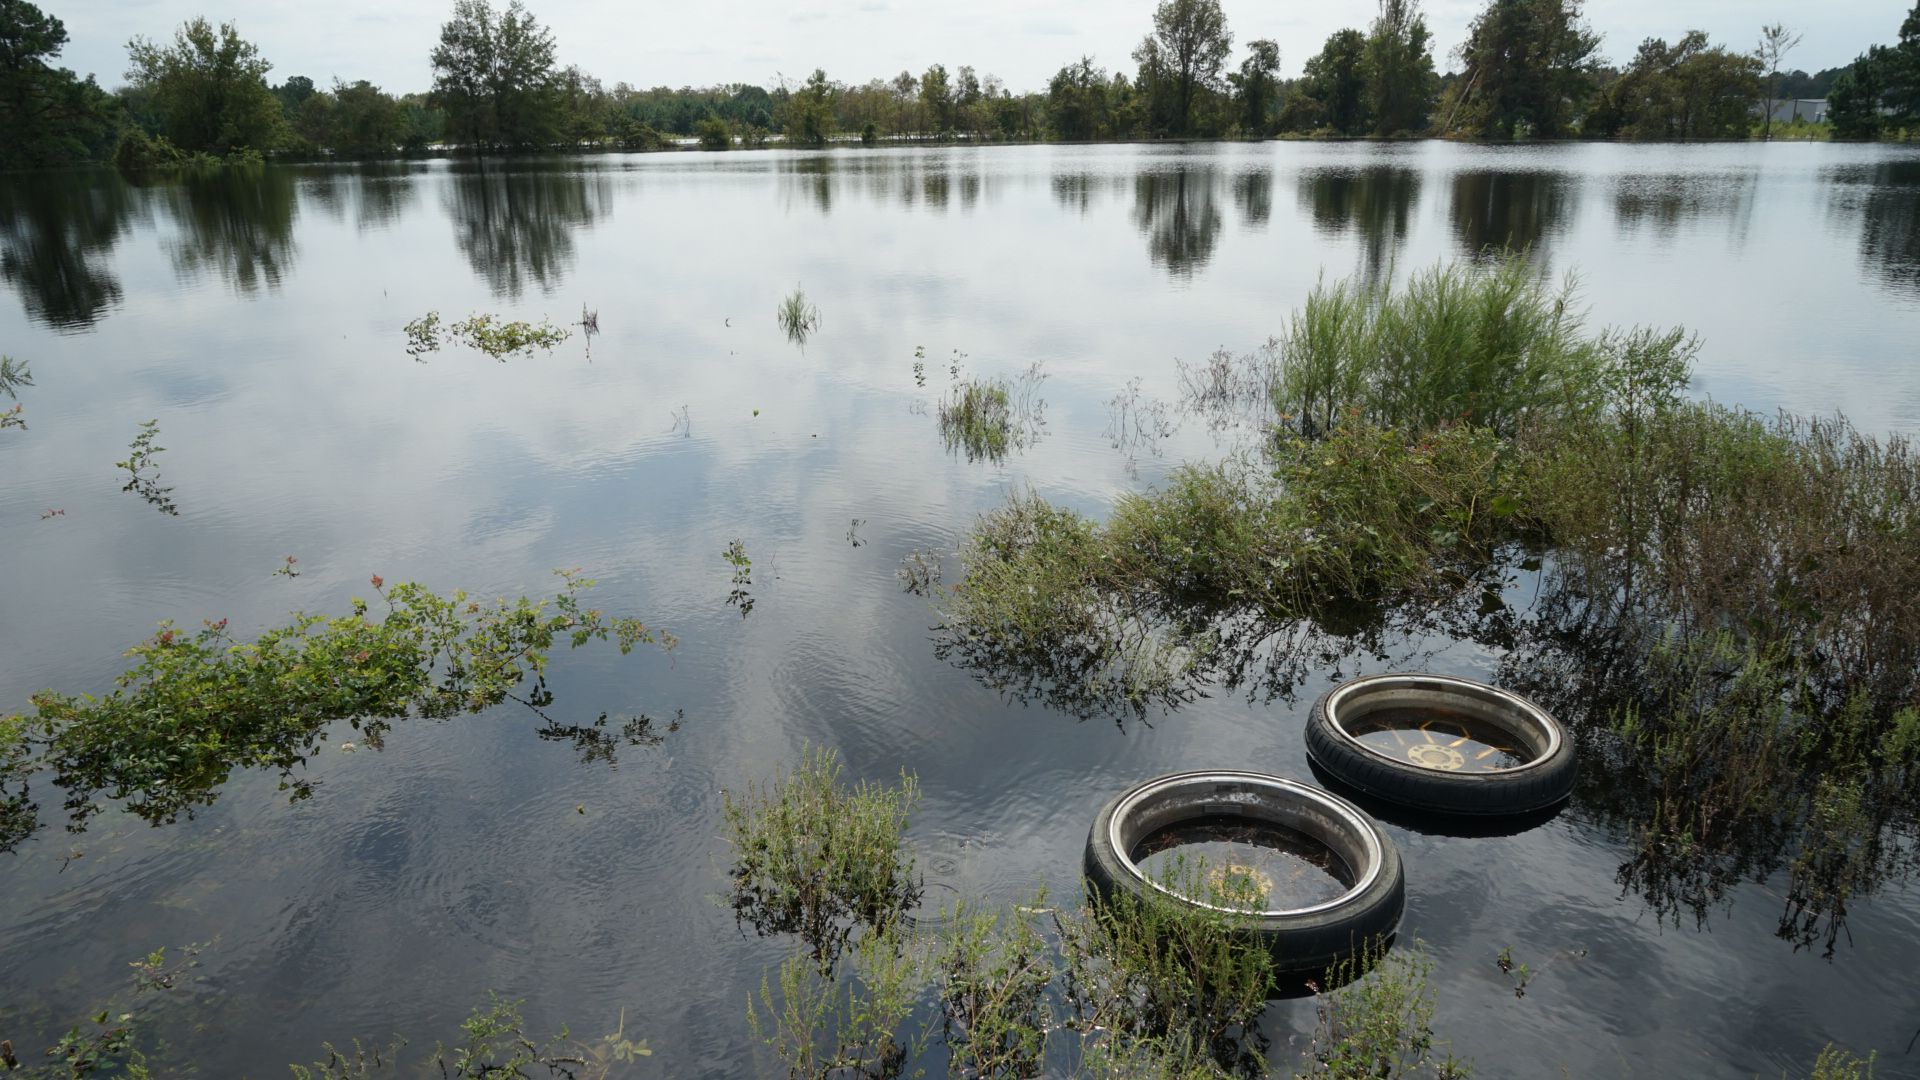 The waters of the Neuse River continued to rise on Friday, Sept. 21, flooding parking lots and infrastructure in Kinston, North Carolina. Hurricane Florence has left many people displaced and without power. (Lara Cooper/Direct Relief)